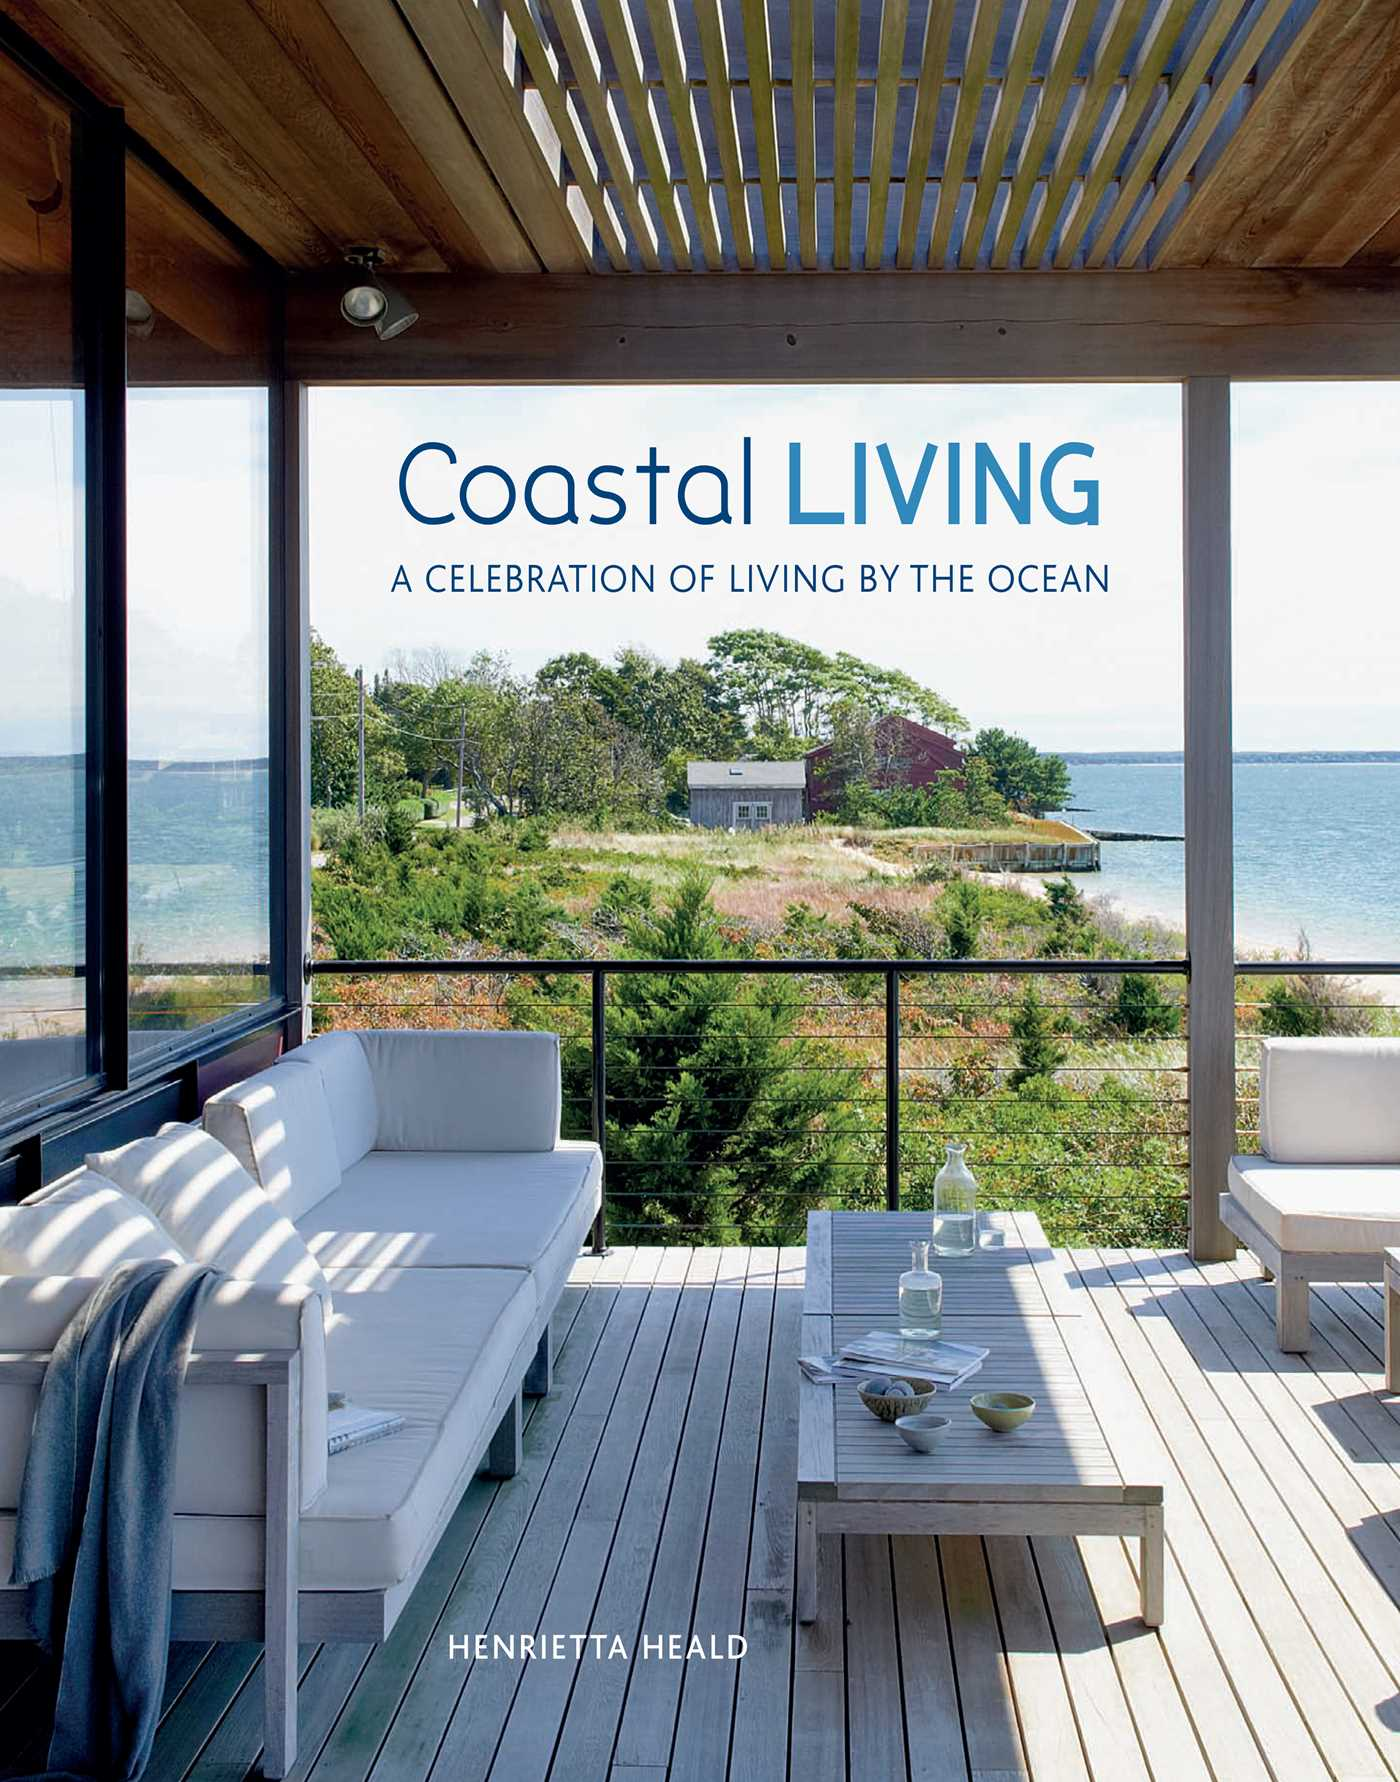 Book Cover Image (jpg): Coastal Living